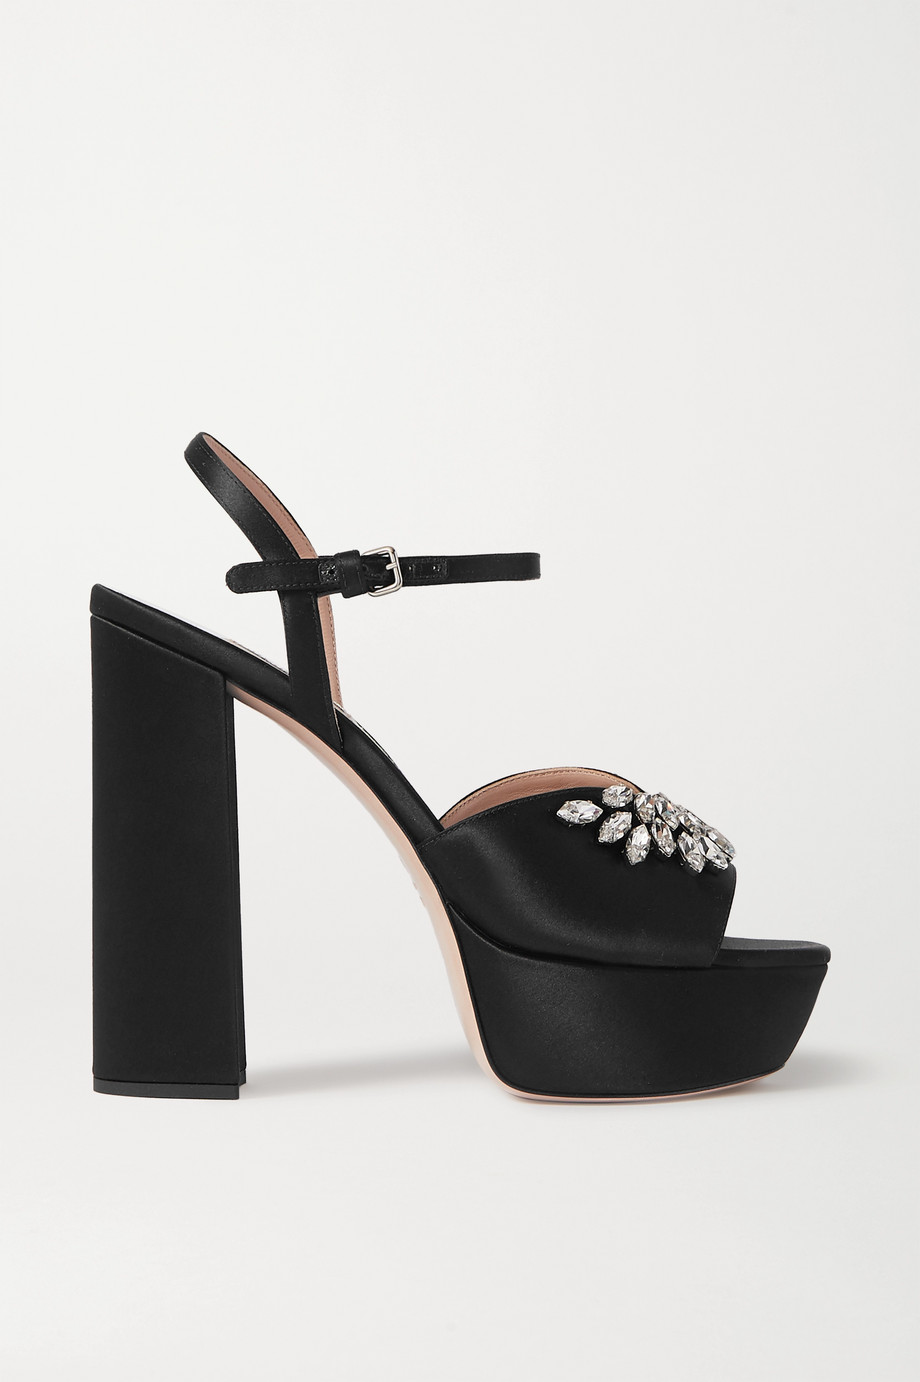 Miu Miu Crystal-embellished satin platform sandals